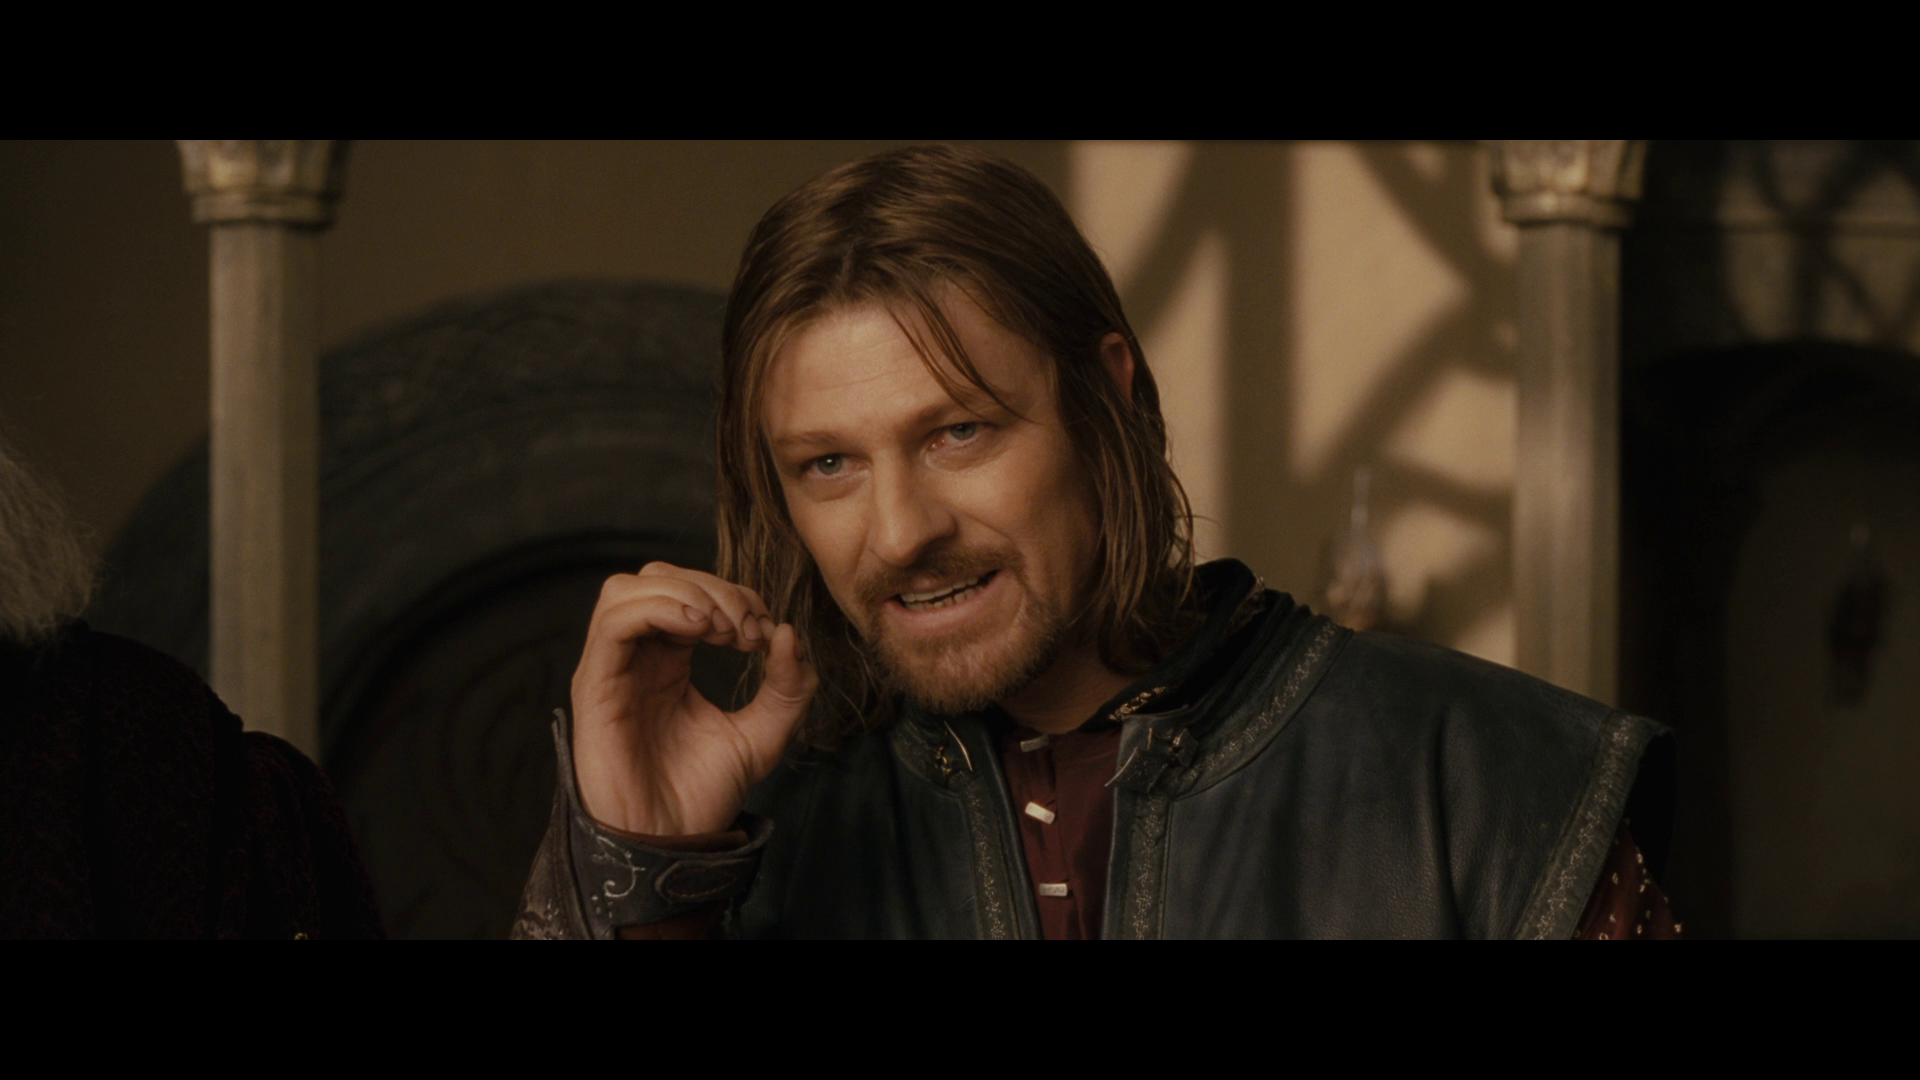 Lord Of The Ring One Does Not Simply